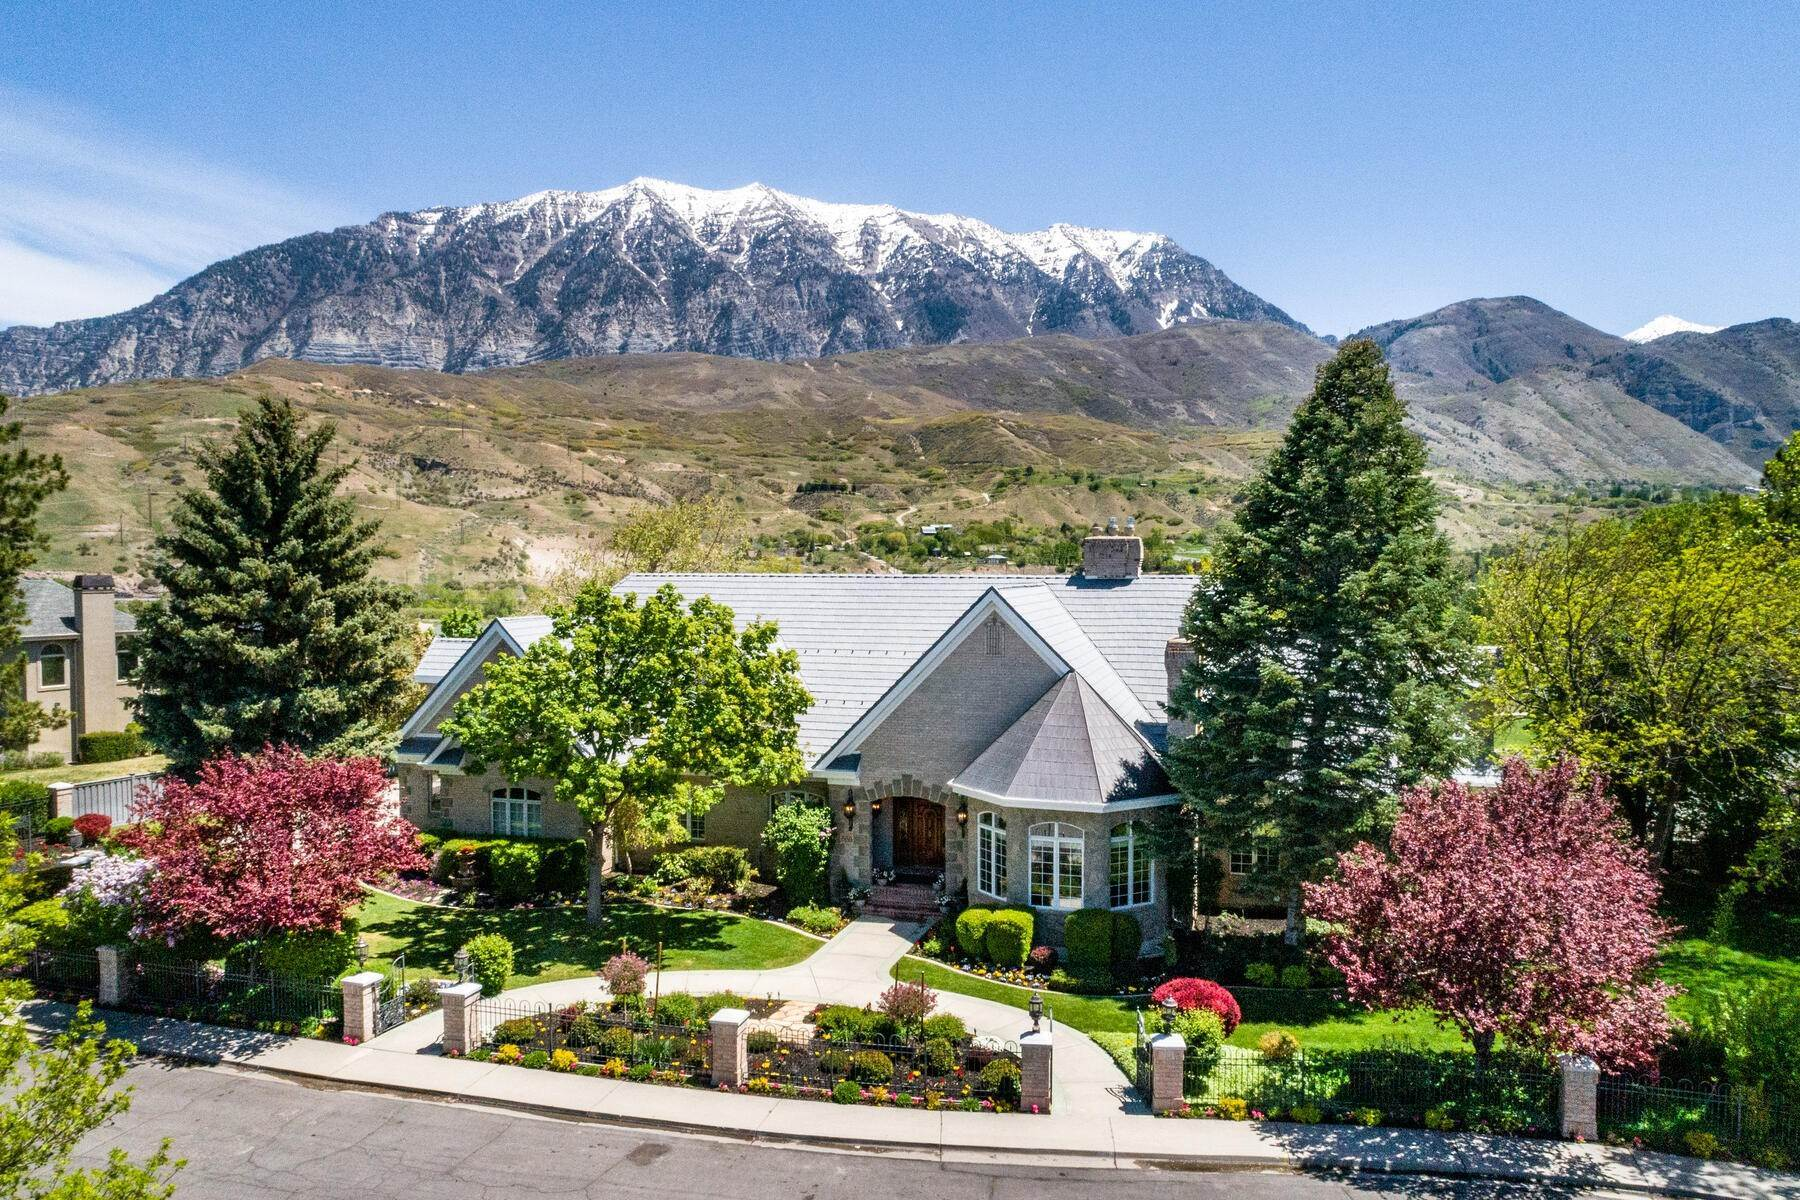 Single Family Homes for Sale at Updated home near Provo Canyon 566 N Bella Vista Drive Orem, Utah 84097 United States